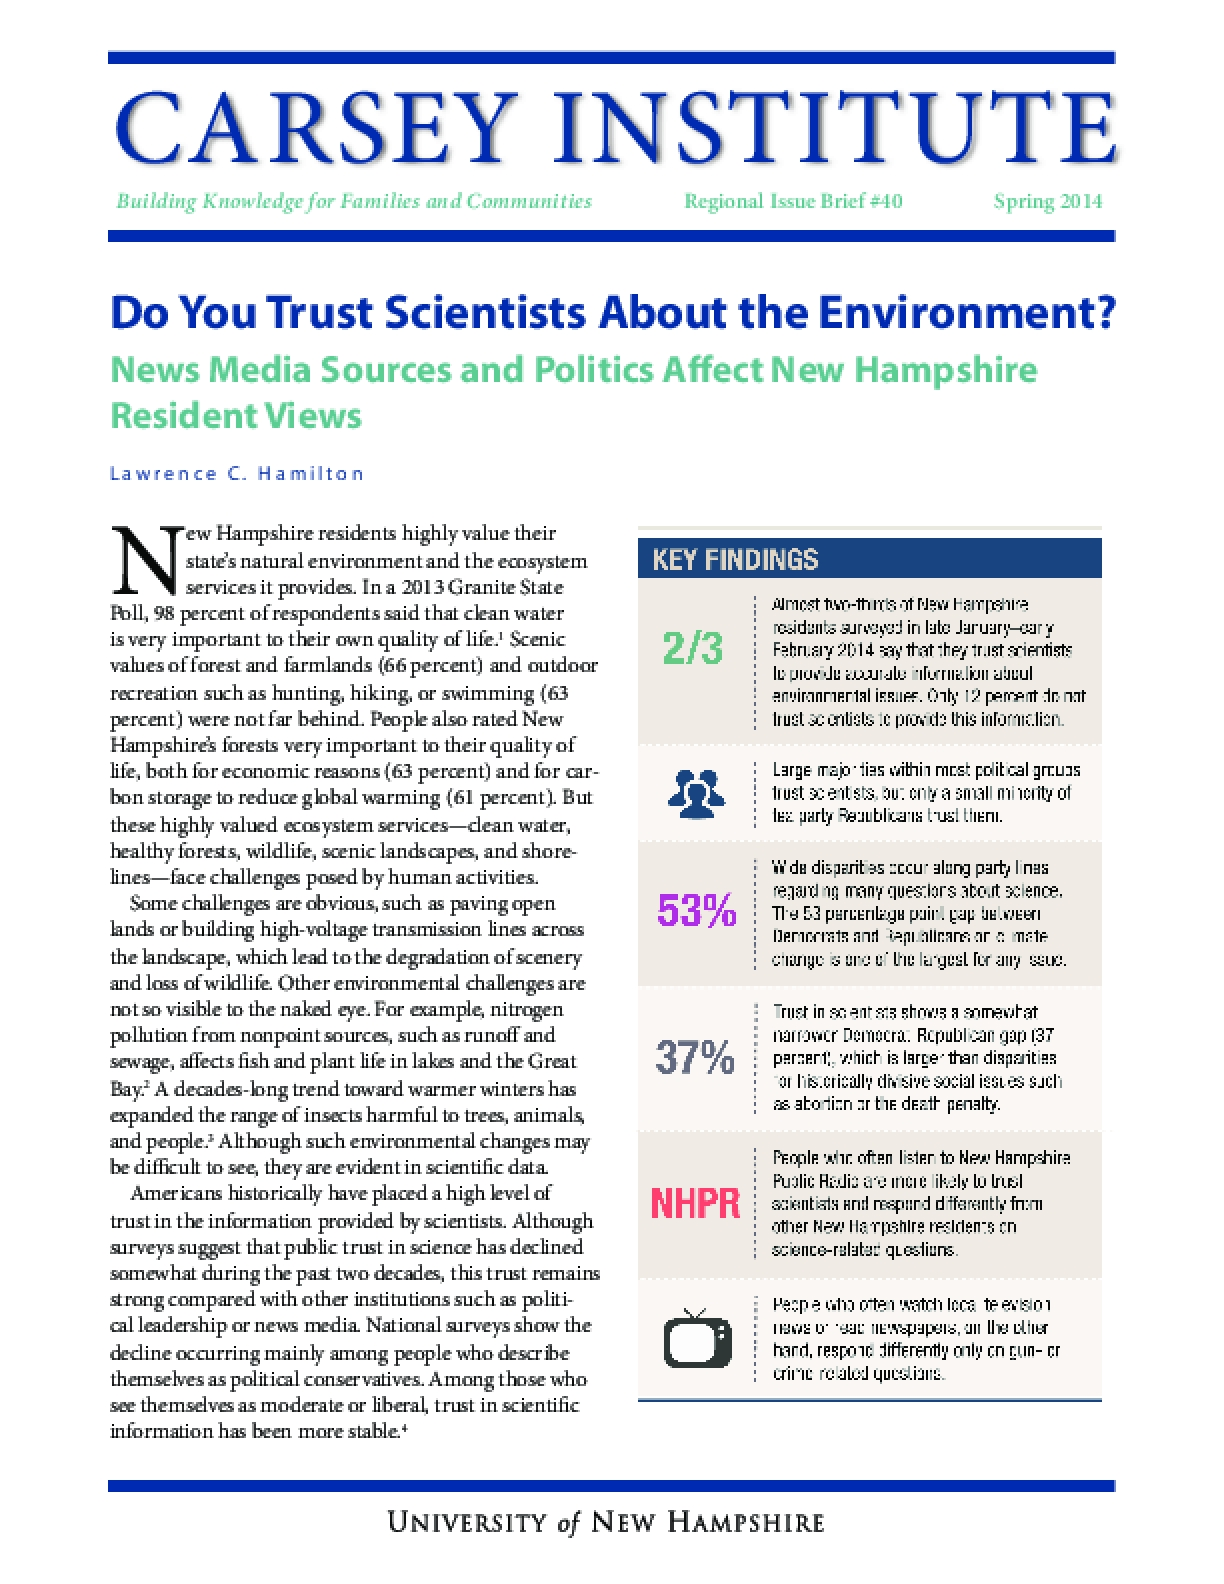 Do You Trust Scientists About the Environment?